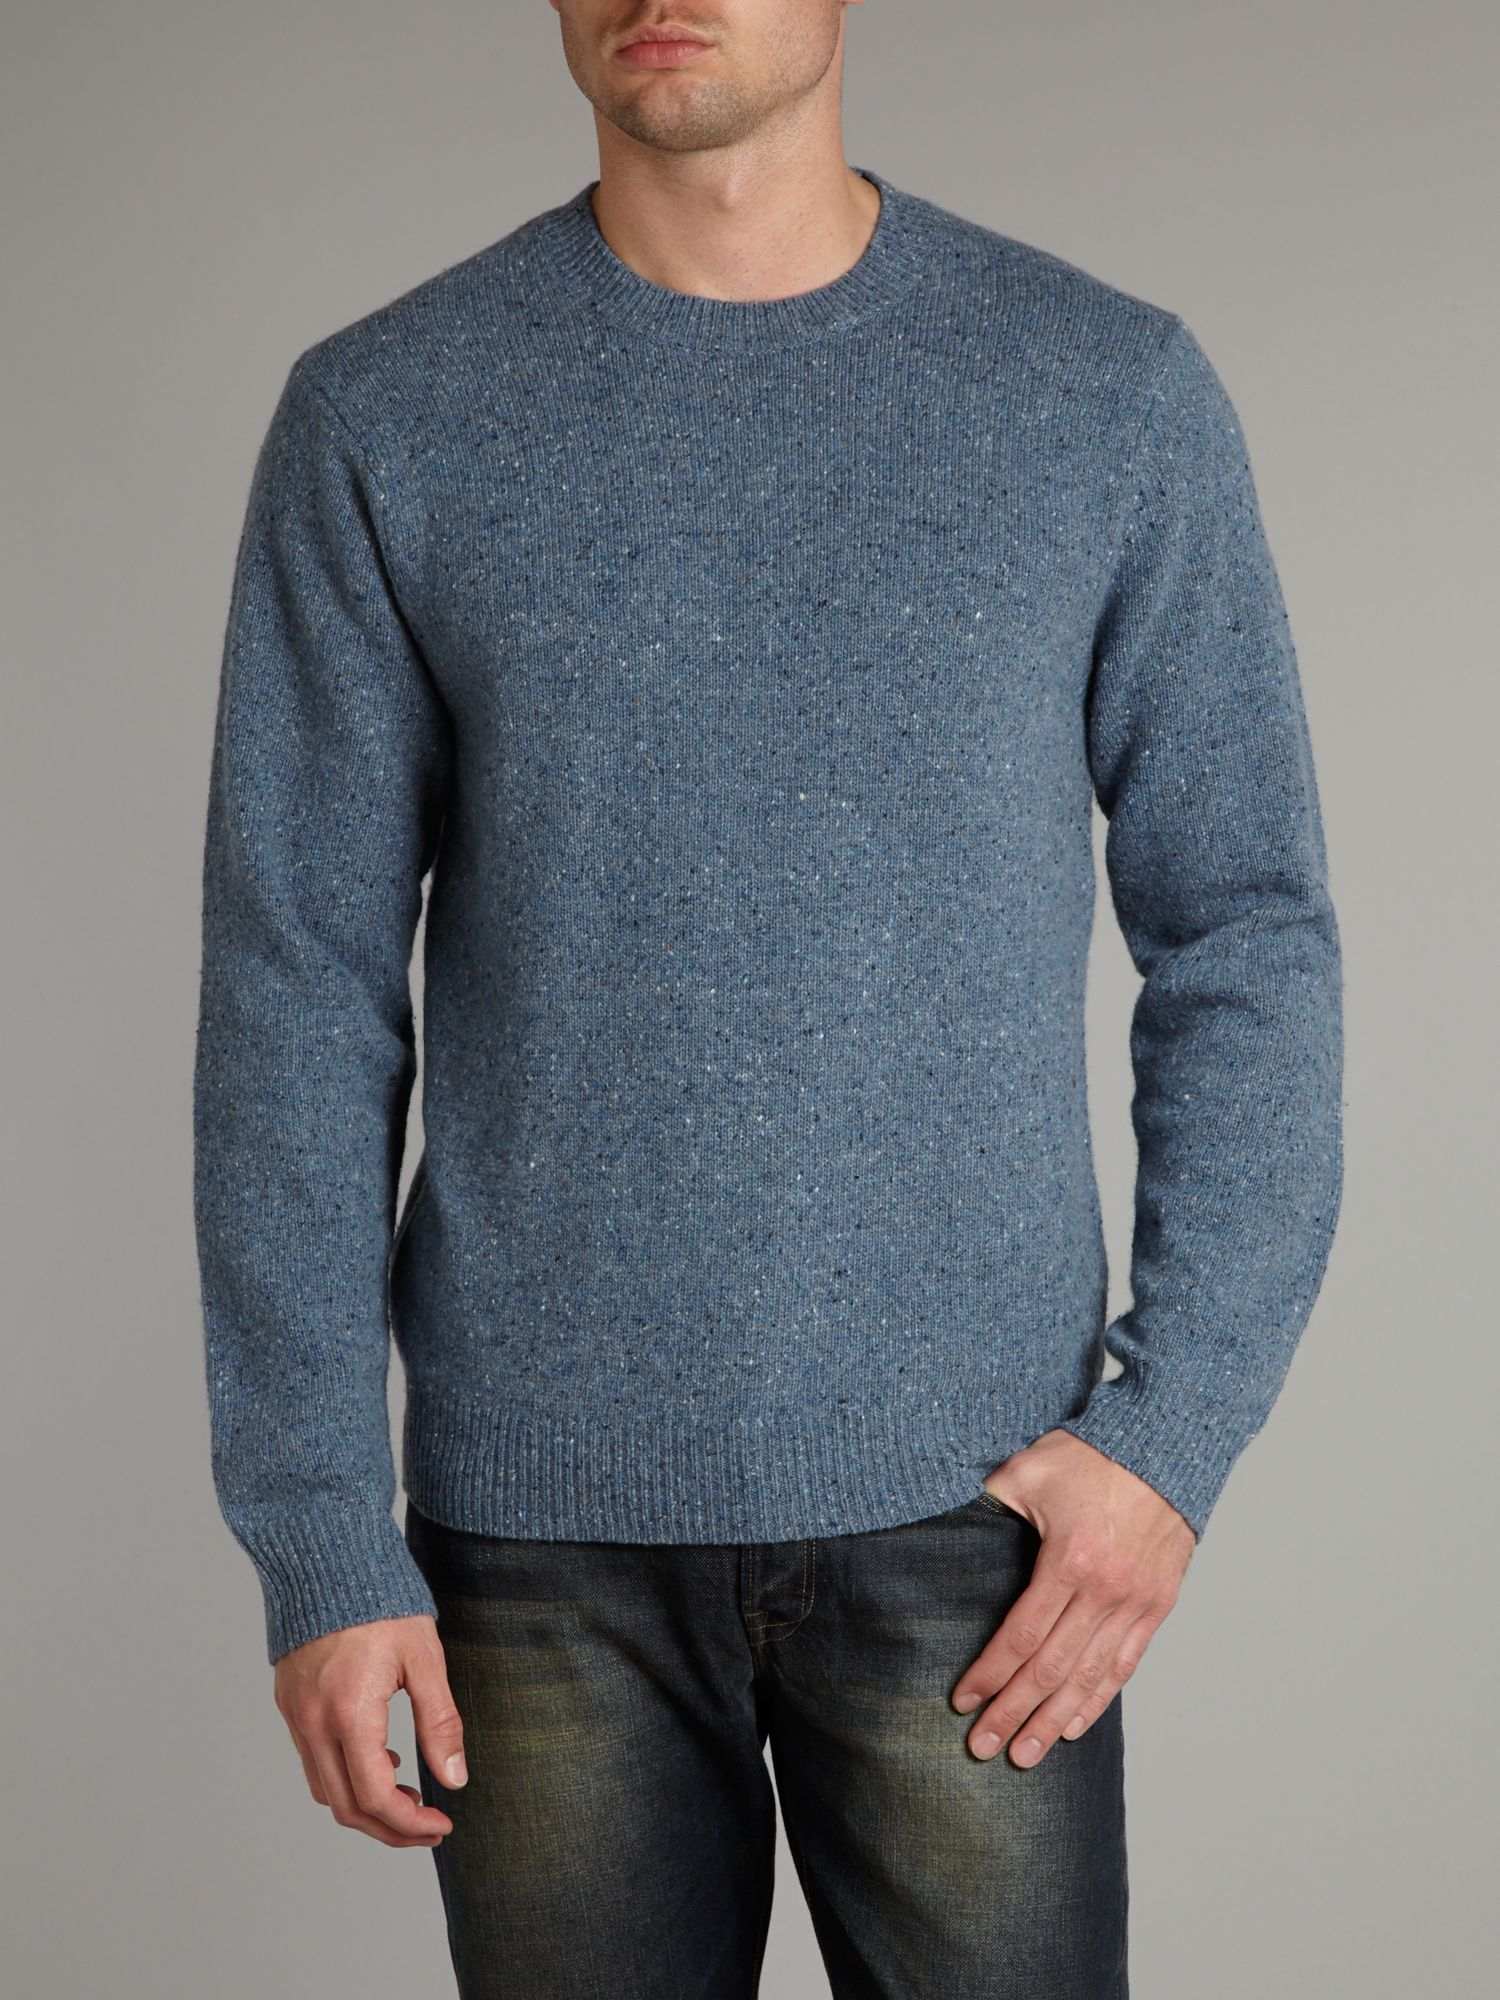 Tweed crew neck jumper